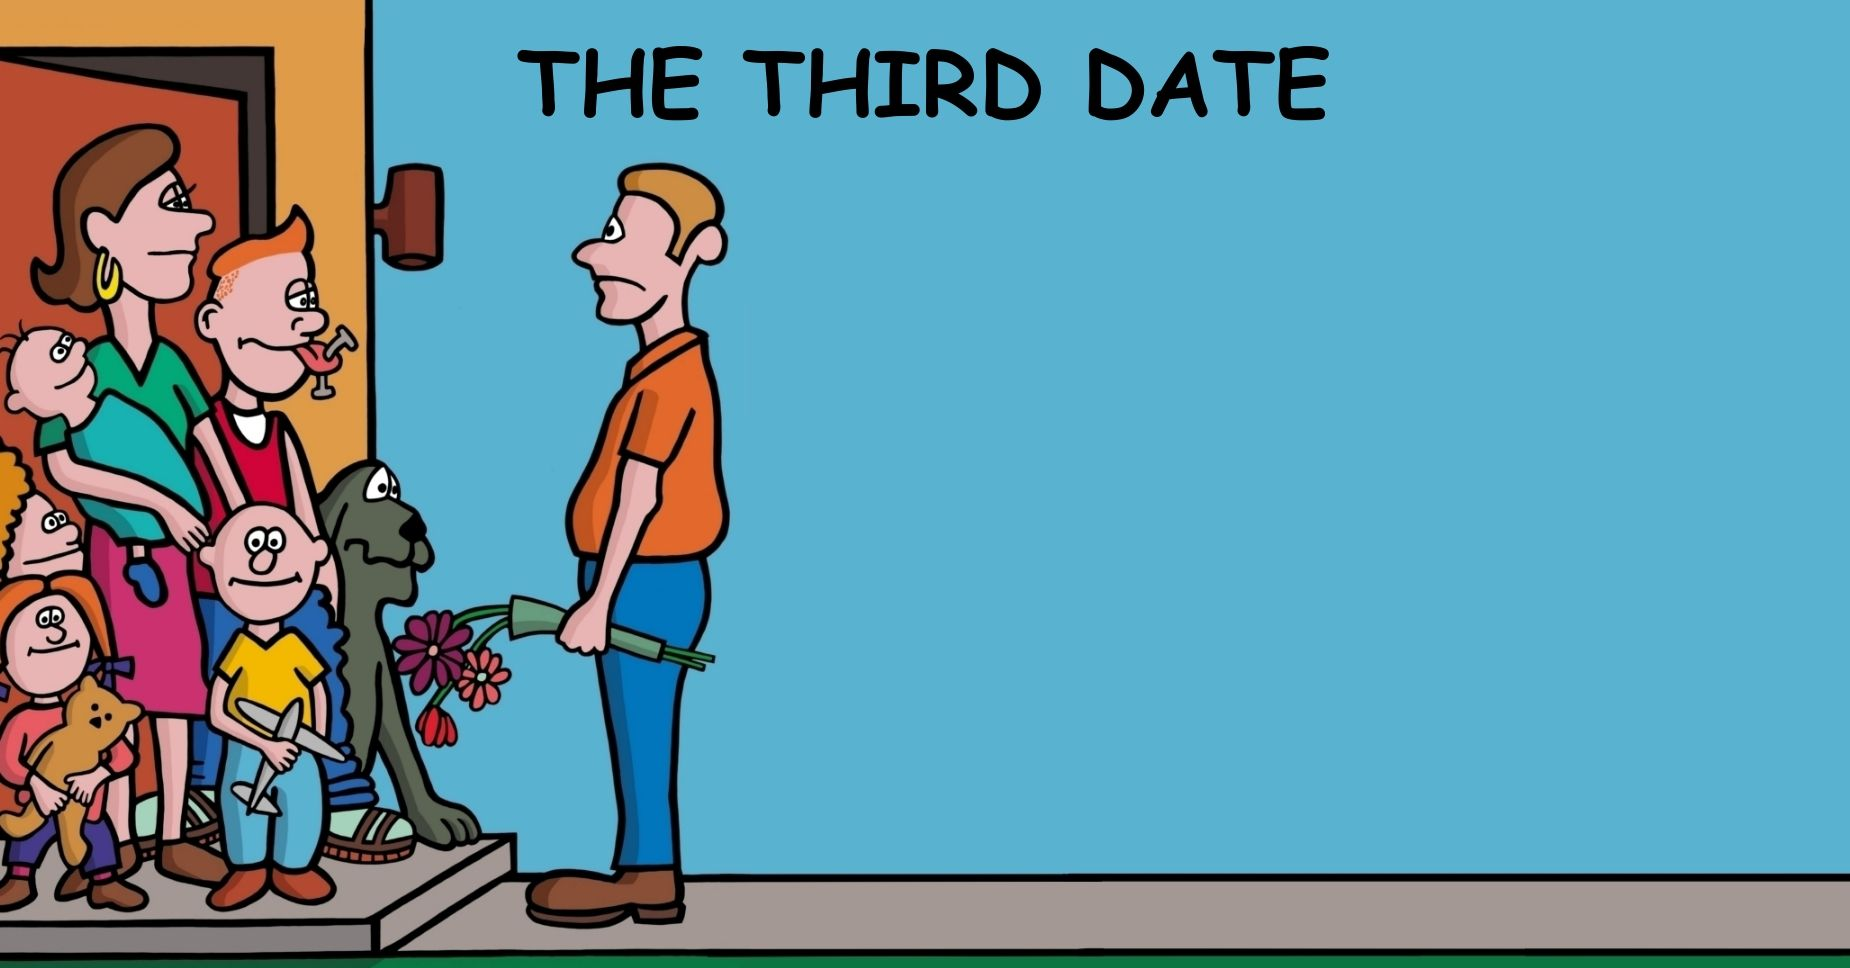 Third date should who for ask the 5 days